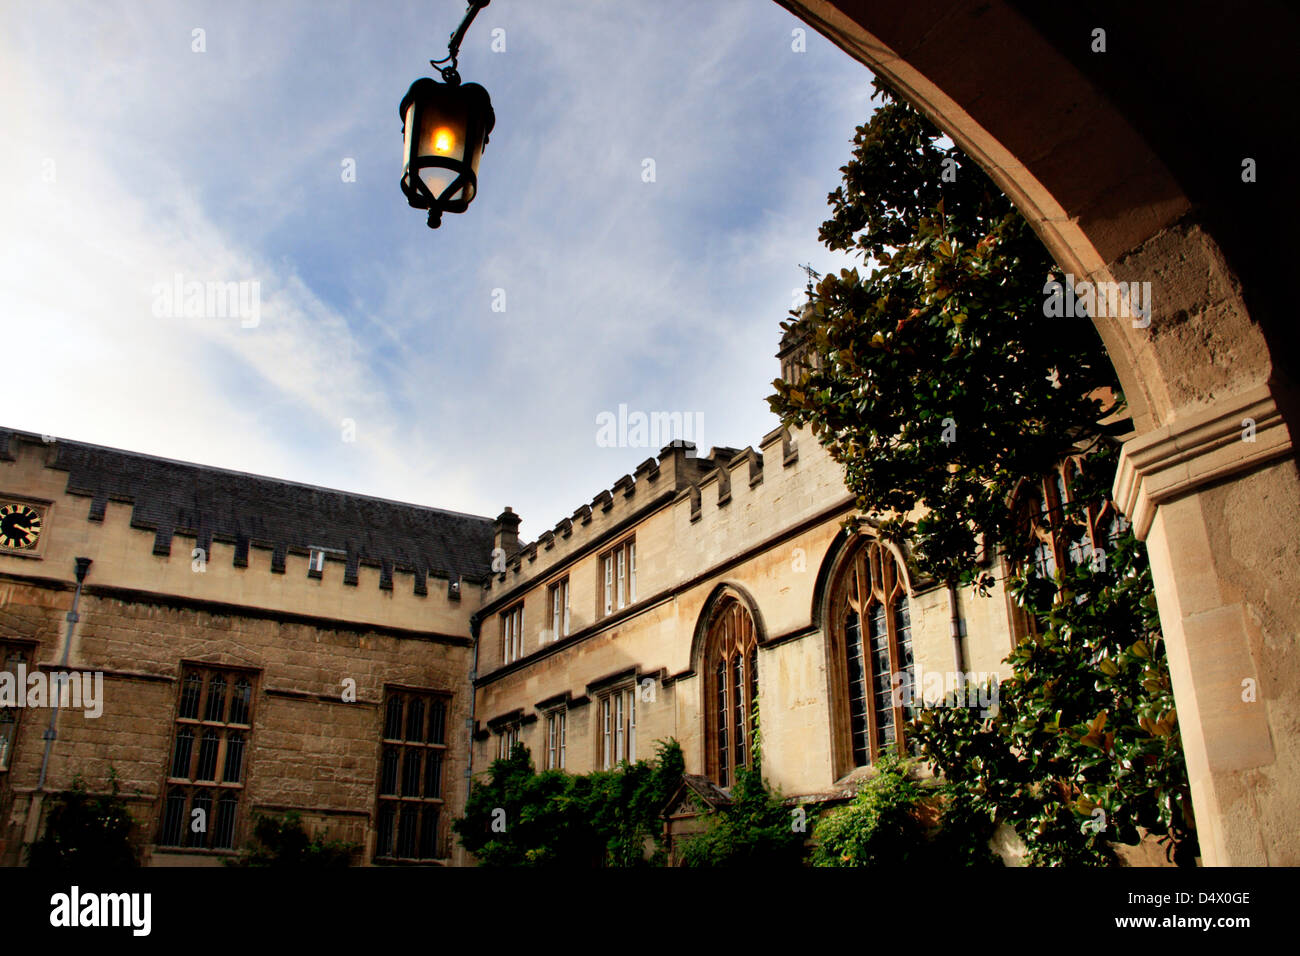 A quadrangle in one of the colleges in Oxford, England - Stock Image